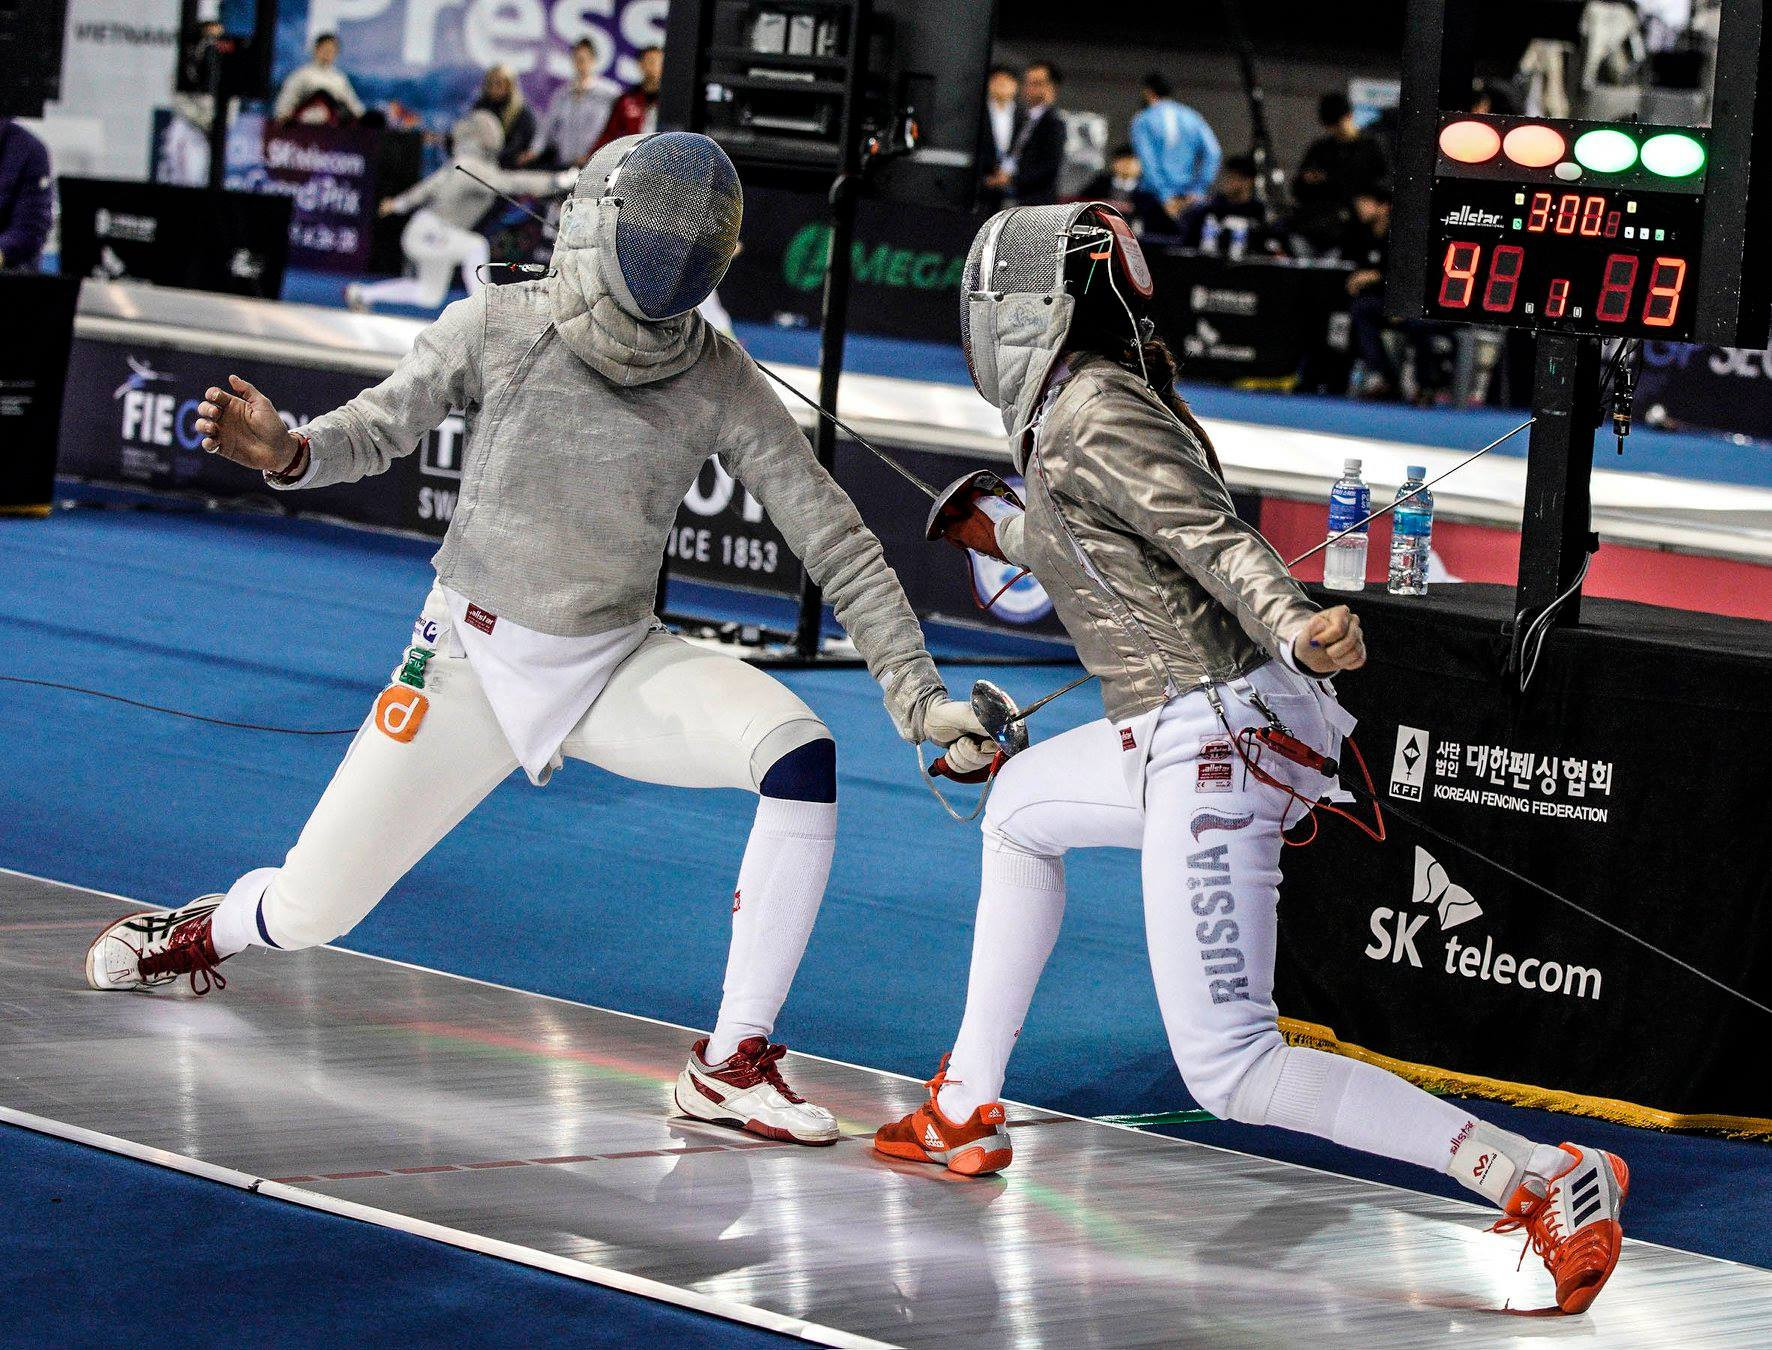 The FIE Sabre Grand Prix in Seoul is taking place at SK Handball Gym ©FIE